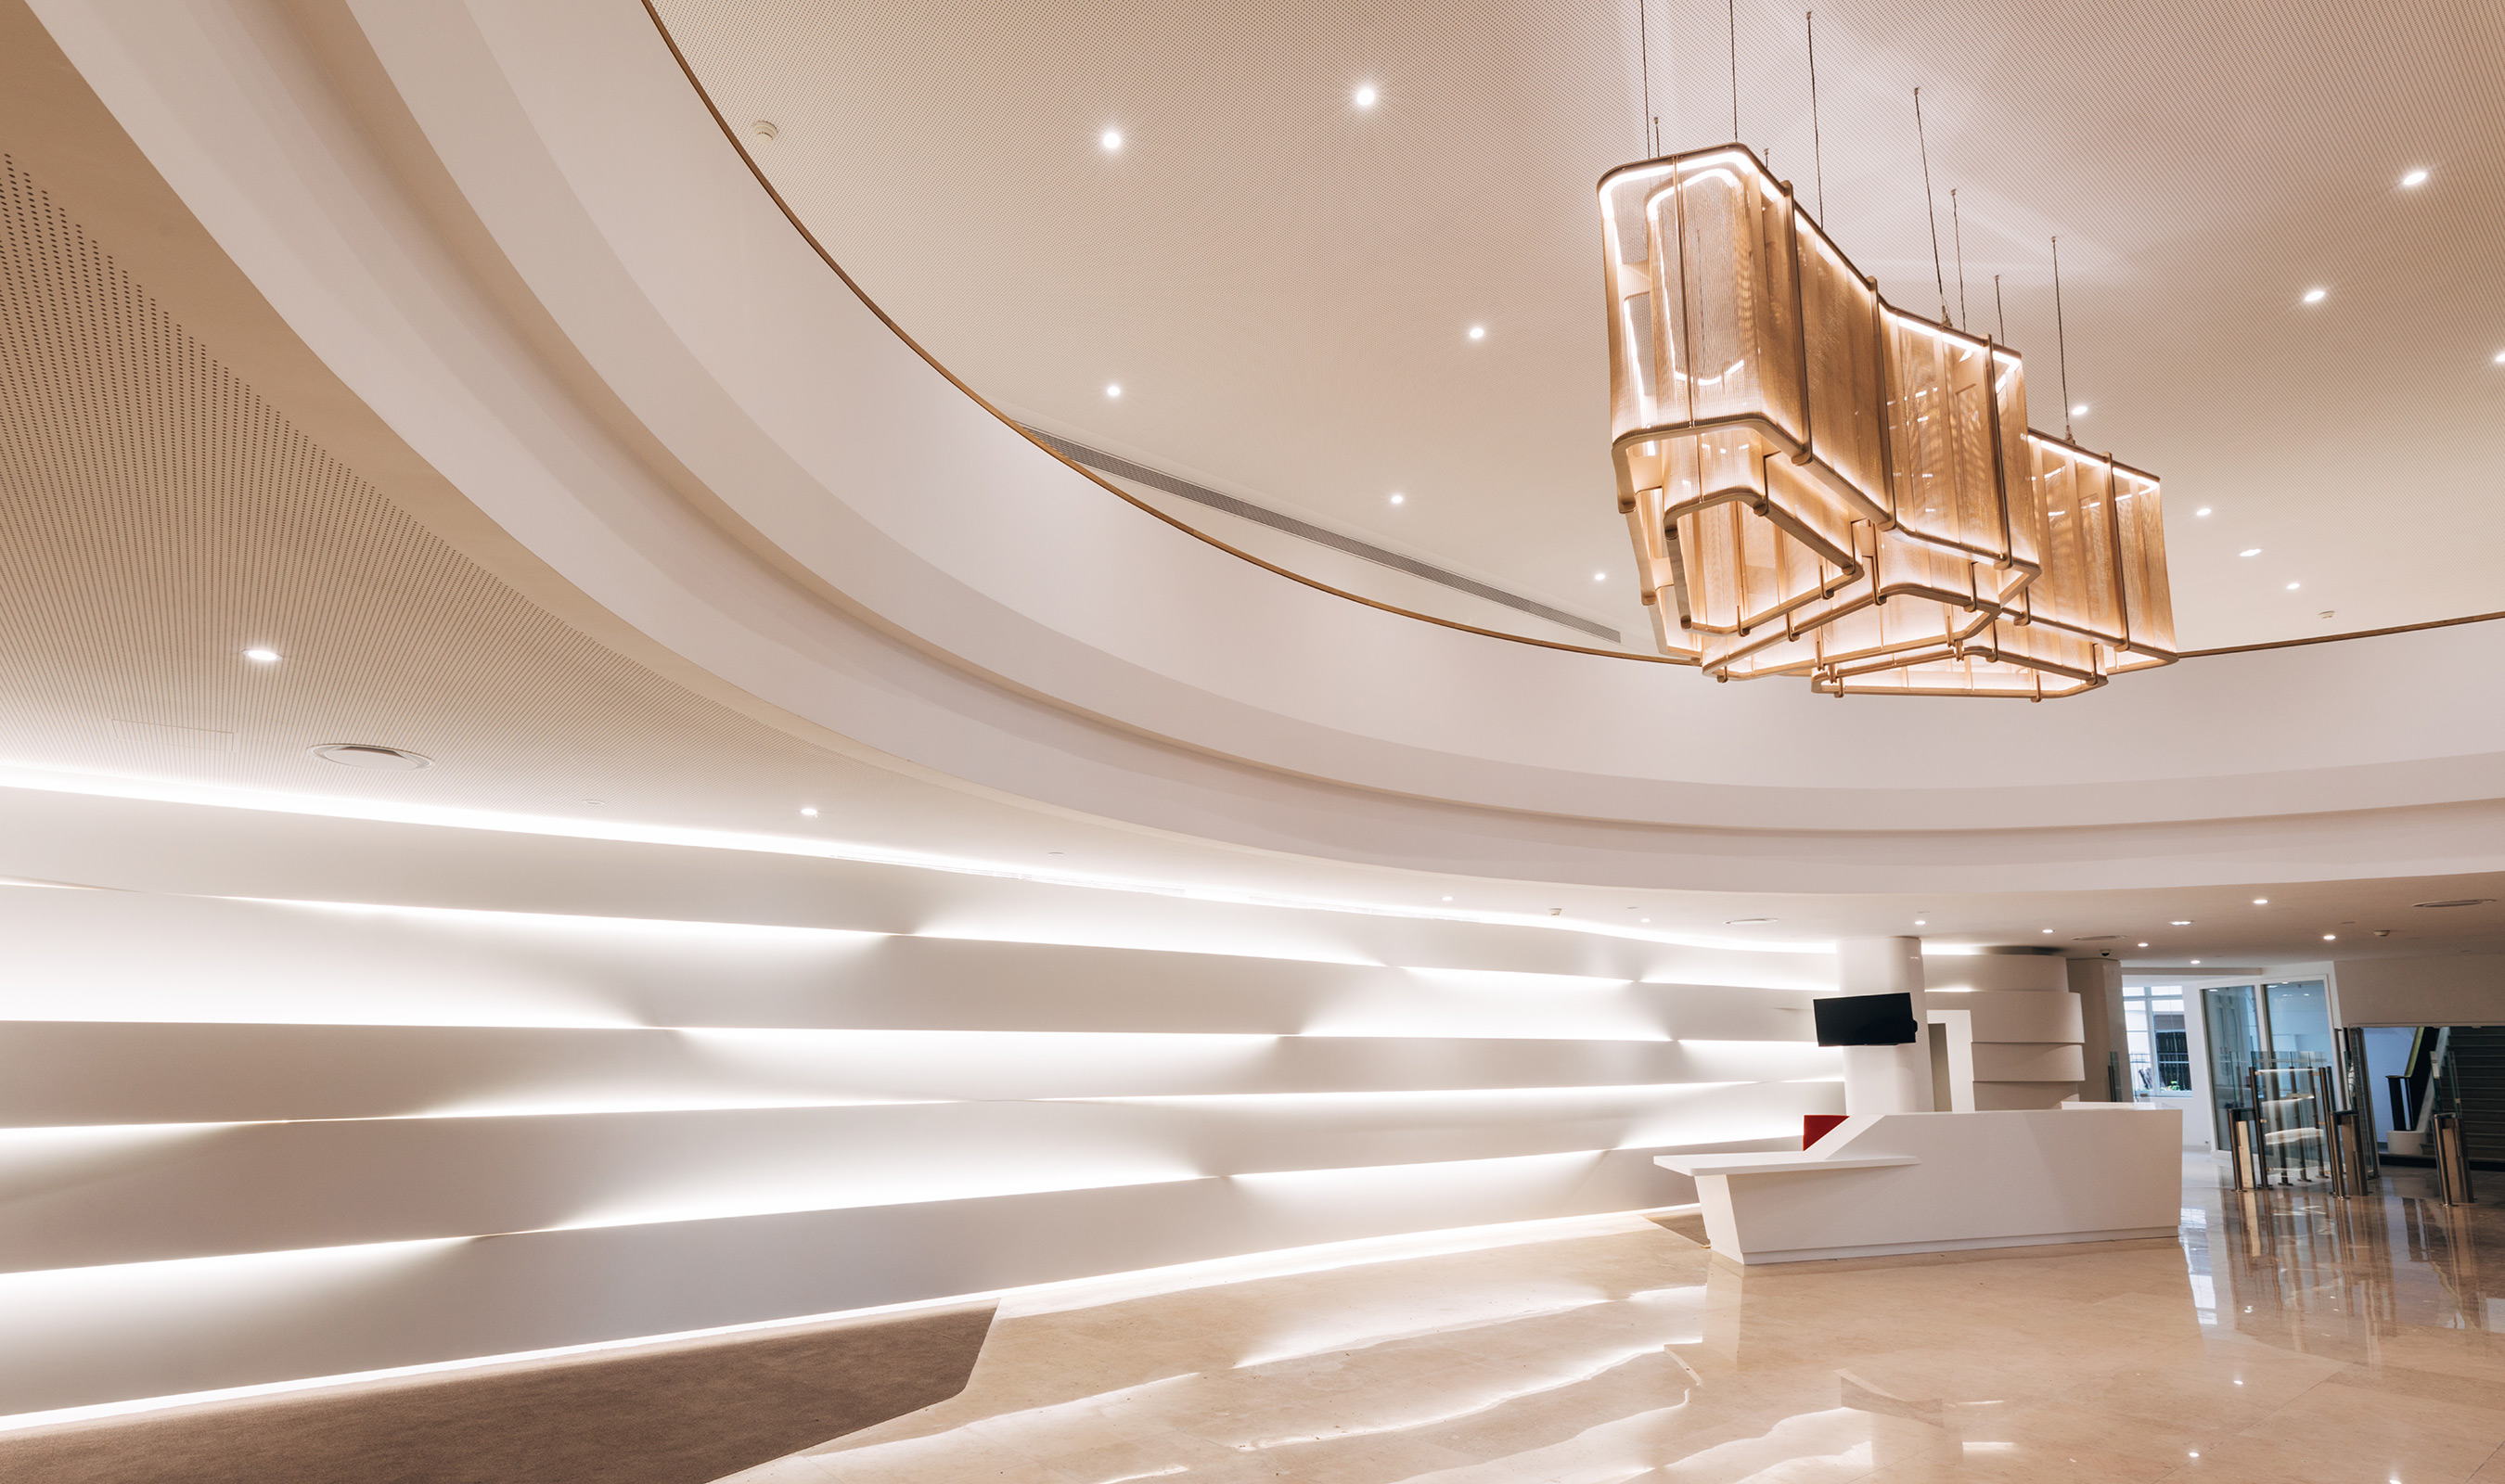 Approximately 615 square feet of Banker Wire's IPZ-25 pattern woven in stainless steel and bronze was used to complement the Art-Deco-inspired interior architecture